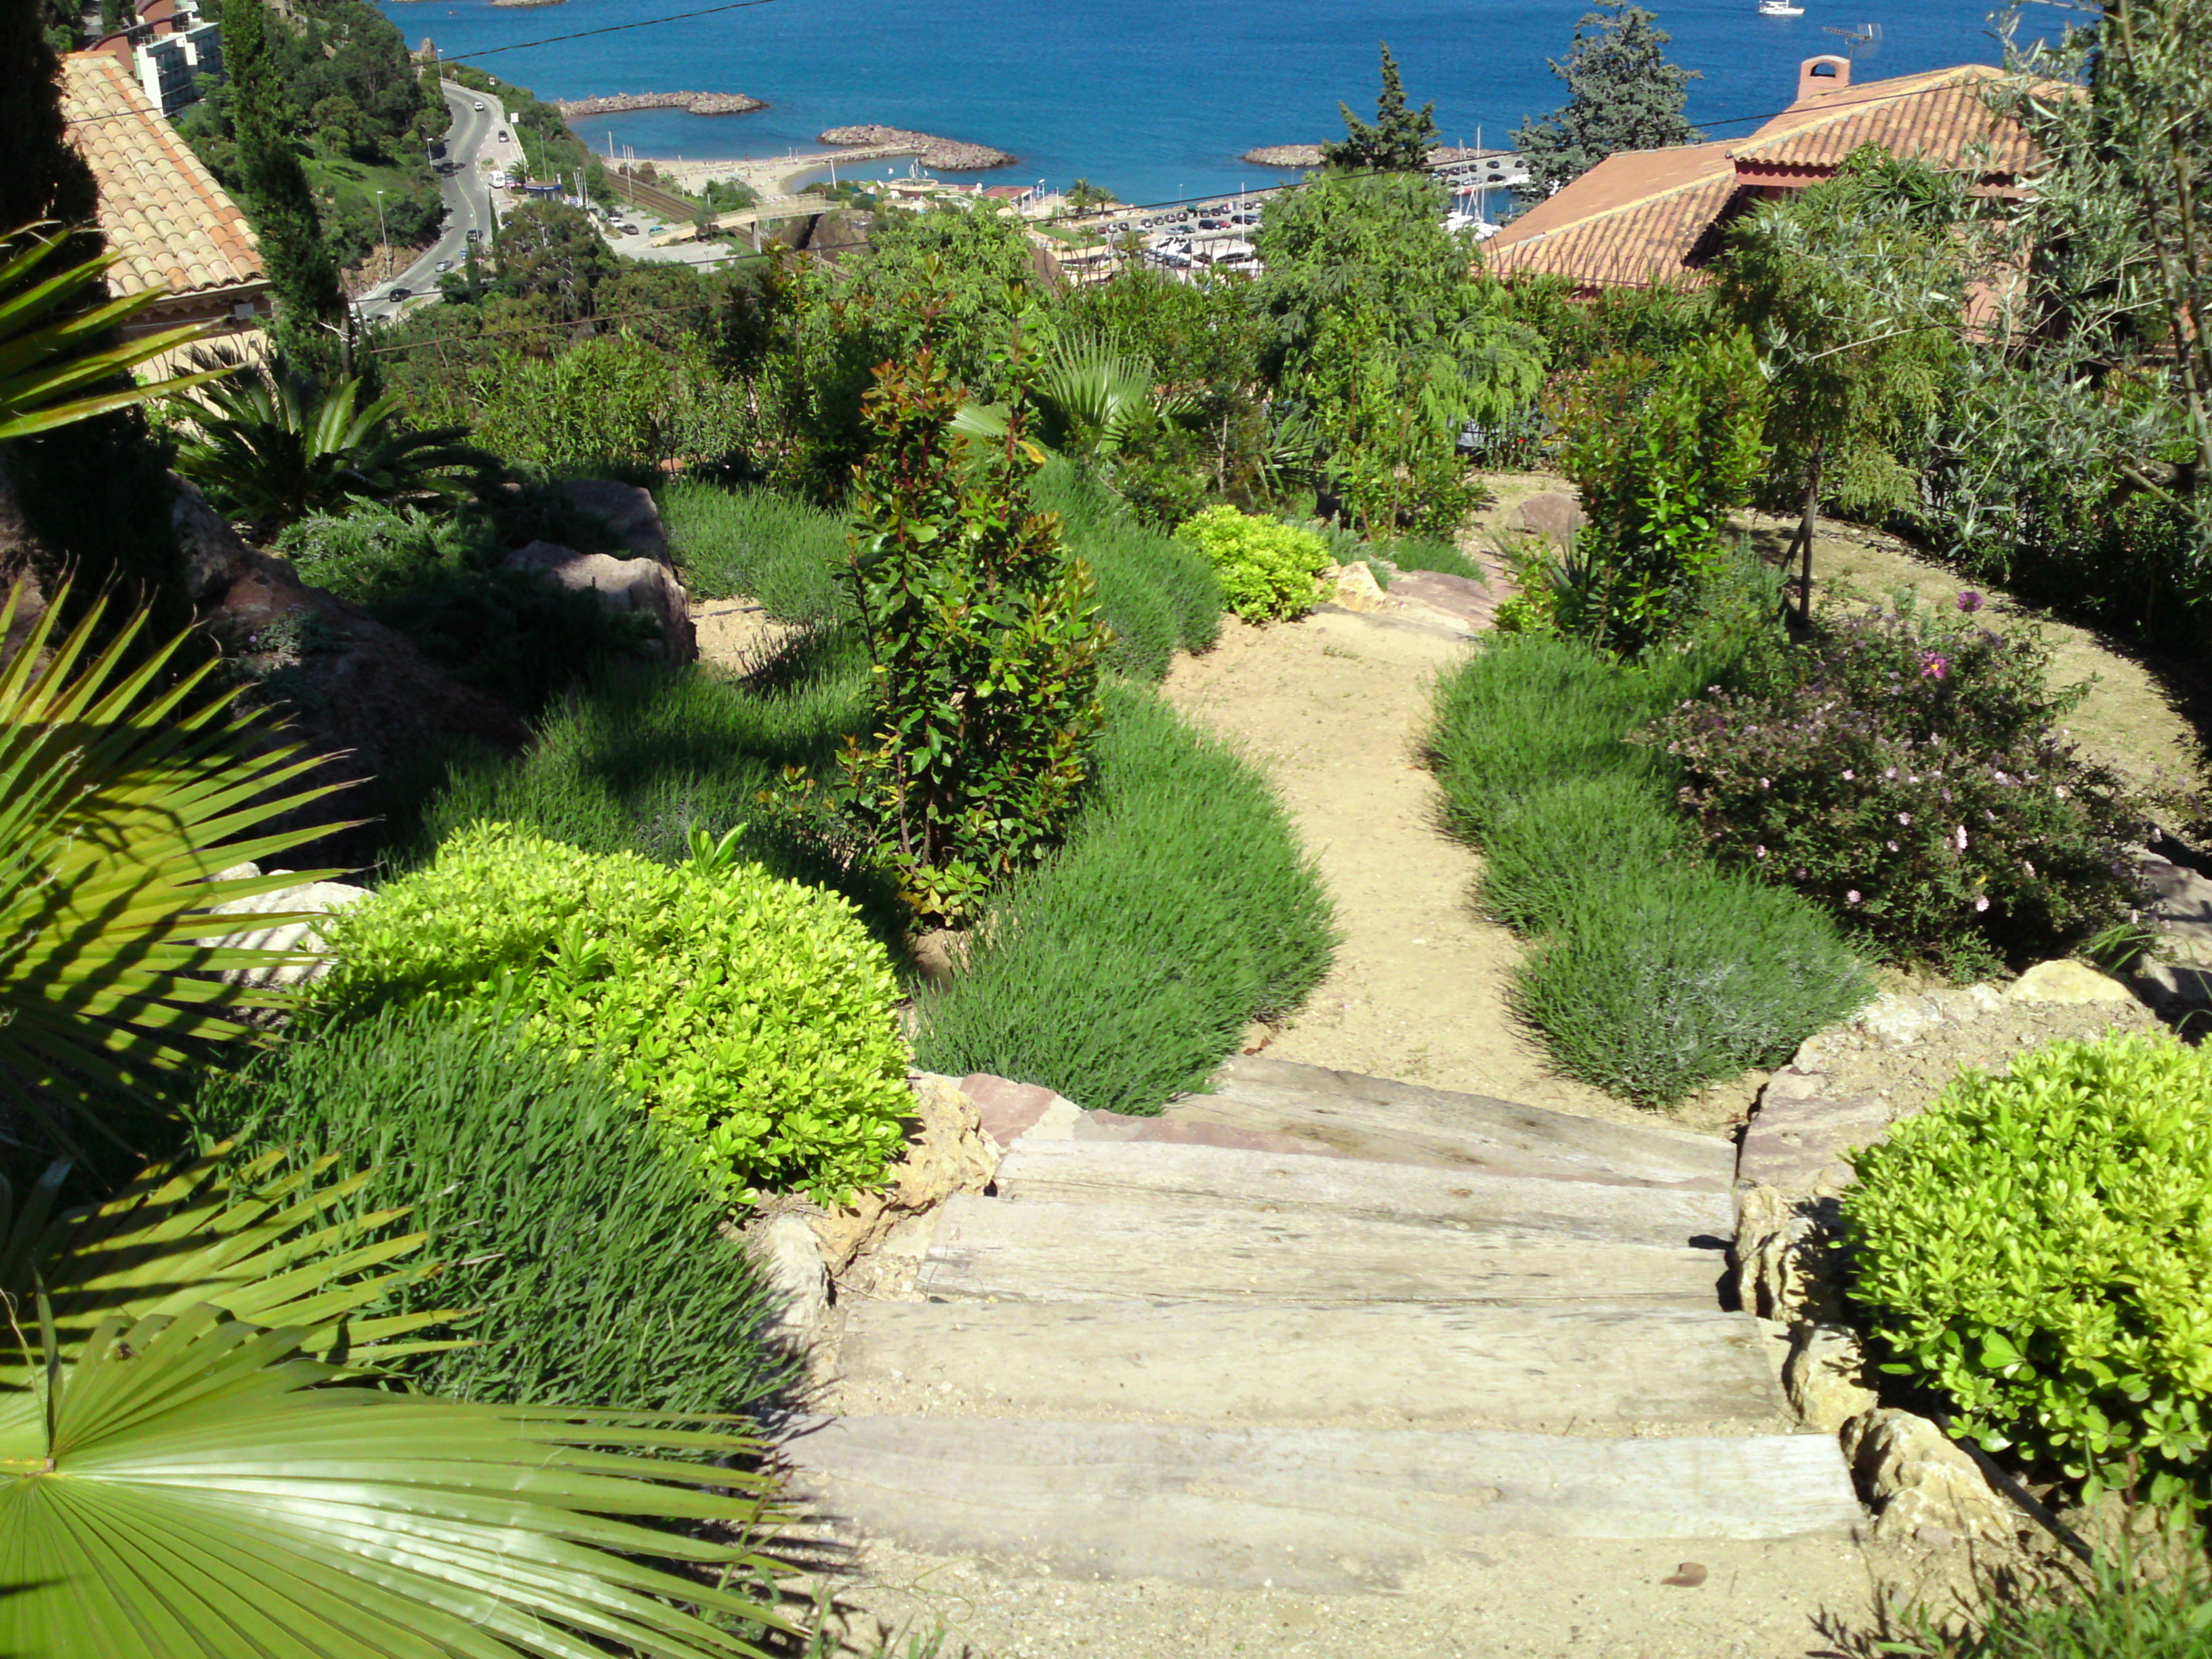 Planete jardin philippe labouyrie landscaping and for Jardin nice